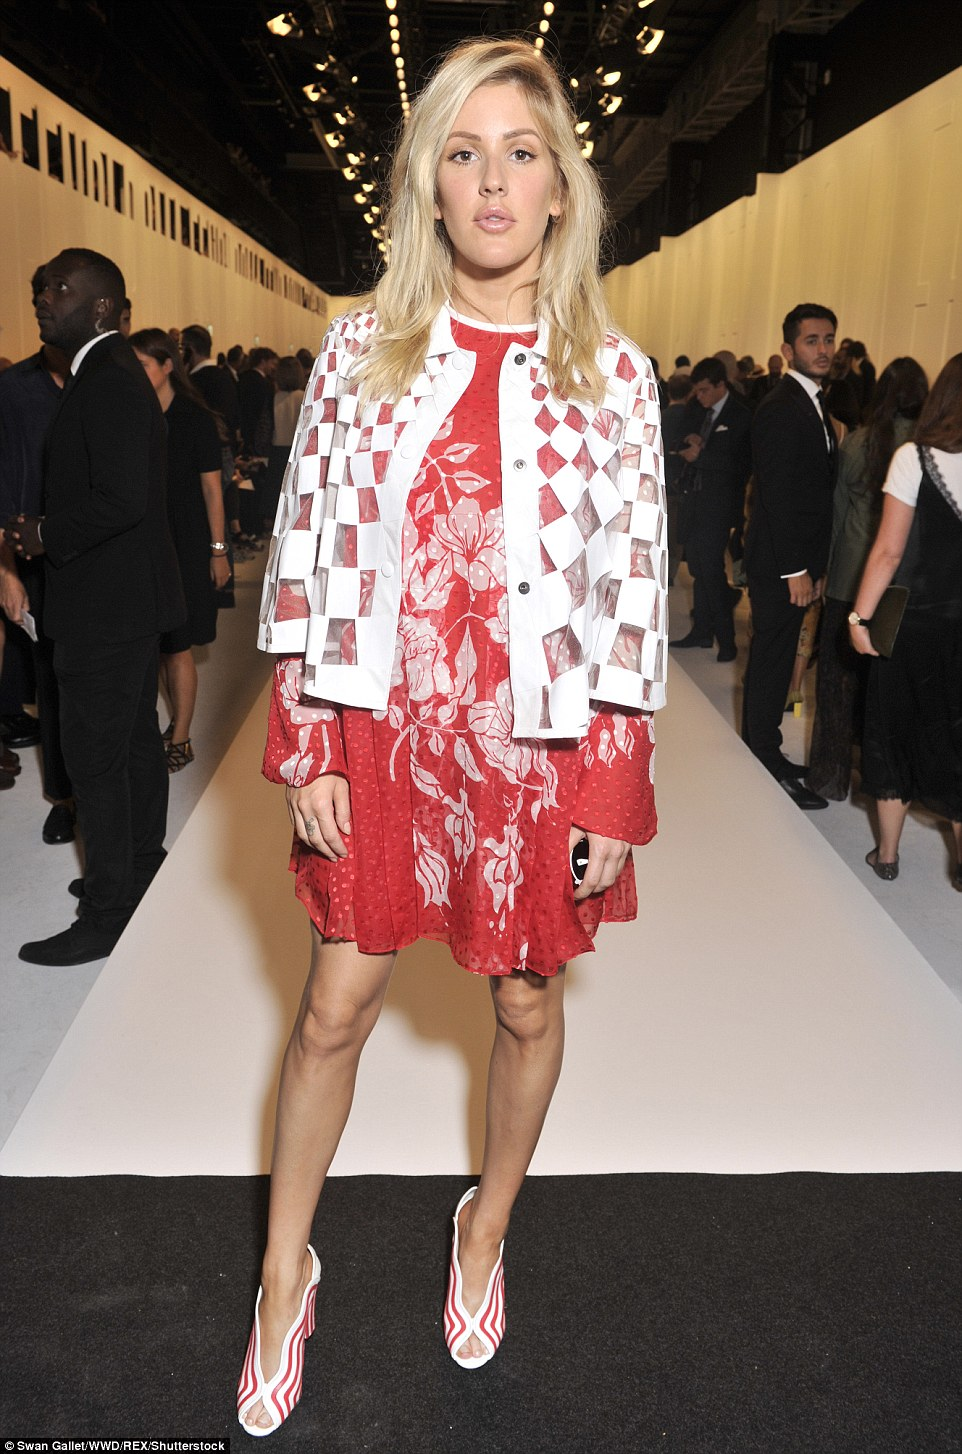 Jet-setter: Ellie Goulding jetted over from her London home for Milan Fashion Week, and was among the show attendees